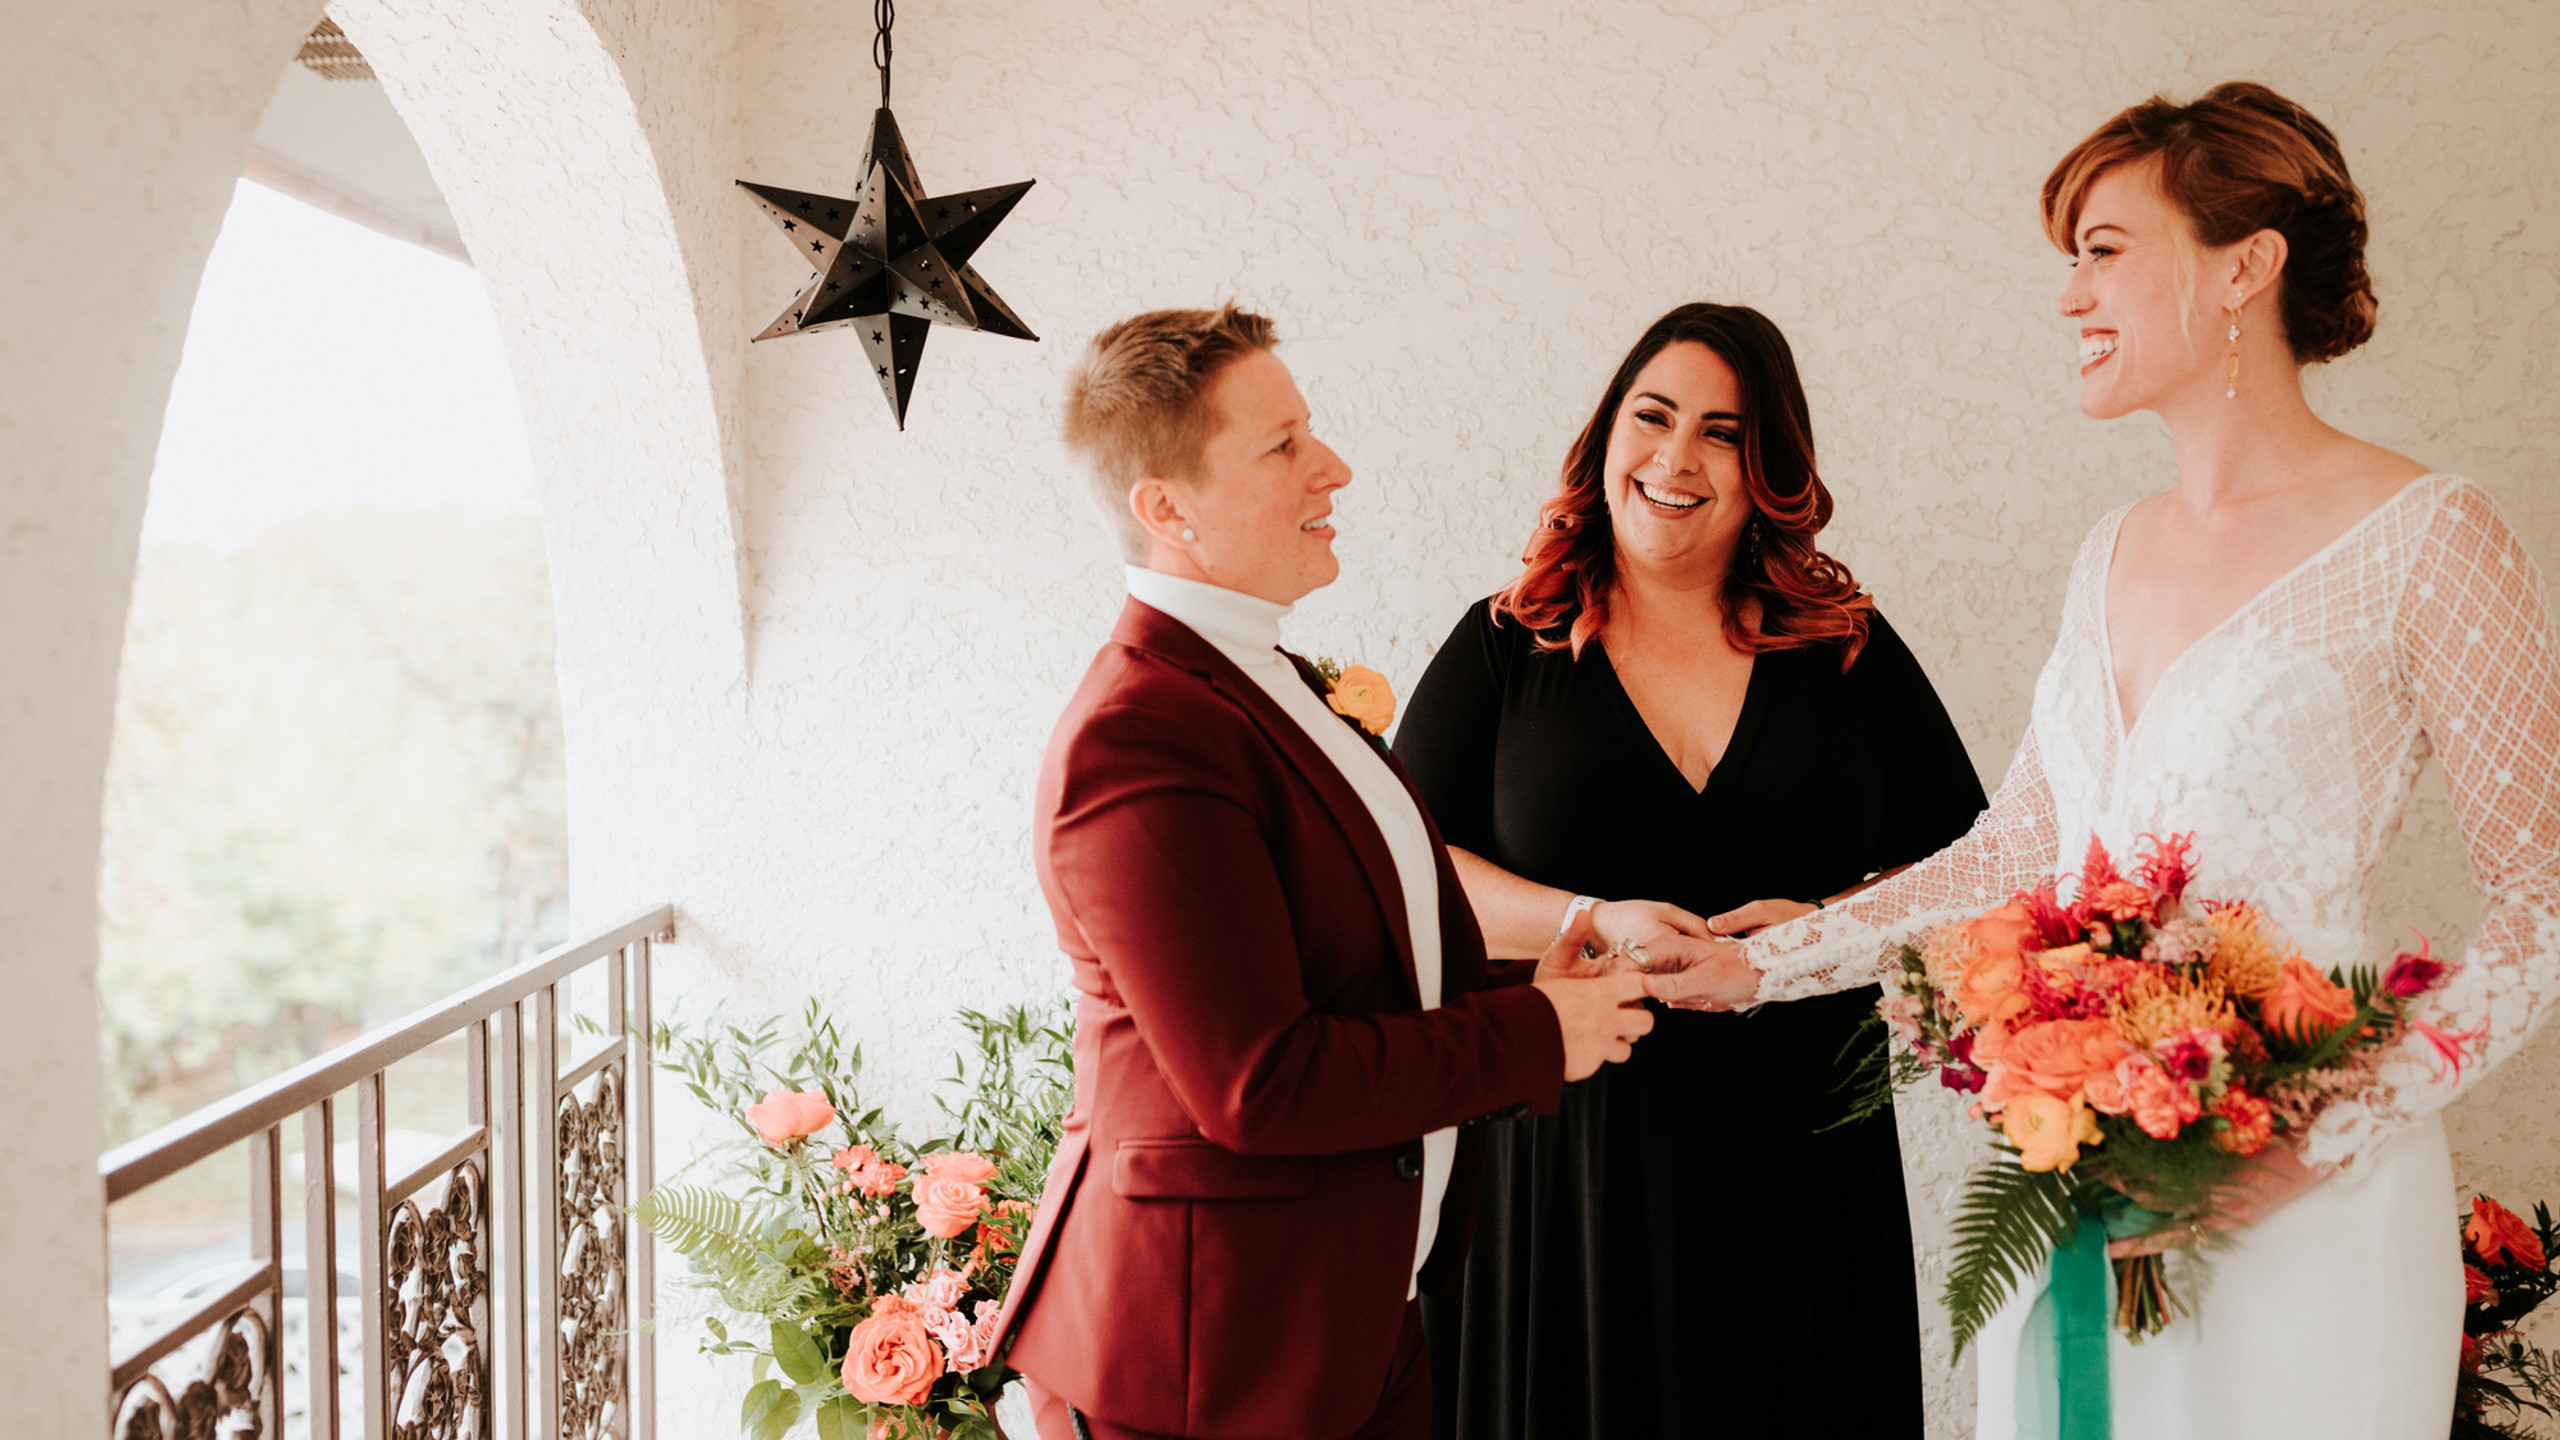 Intimate wedding ceremony with LGBTQ couple centering Marie from Lets Get Married by Marie as the officiant